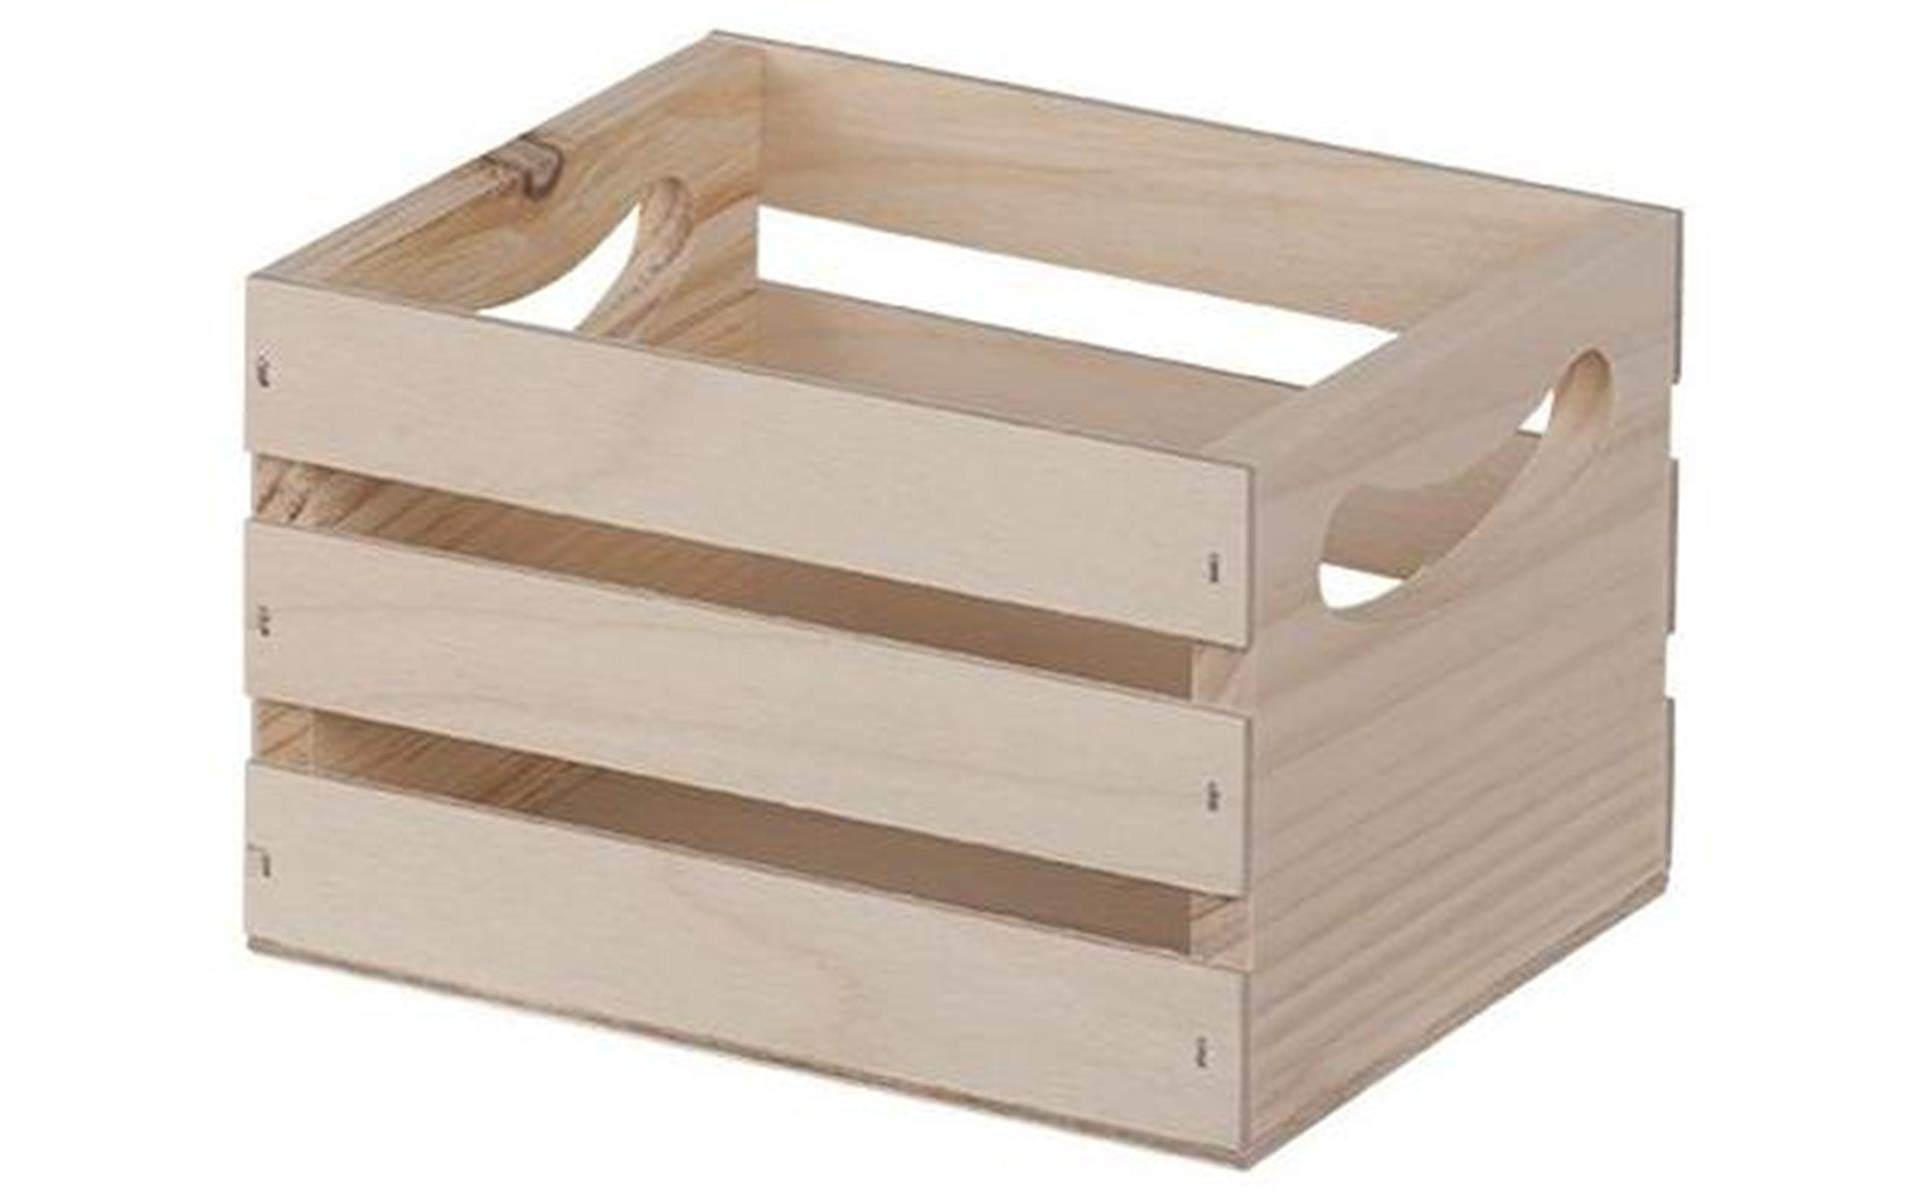 Walnut Hollow 23873 6.5 by 5.3 by 4.25-Inch Crate, Mini